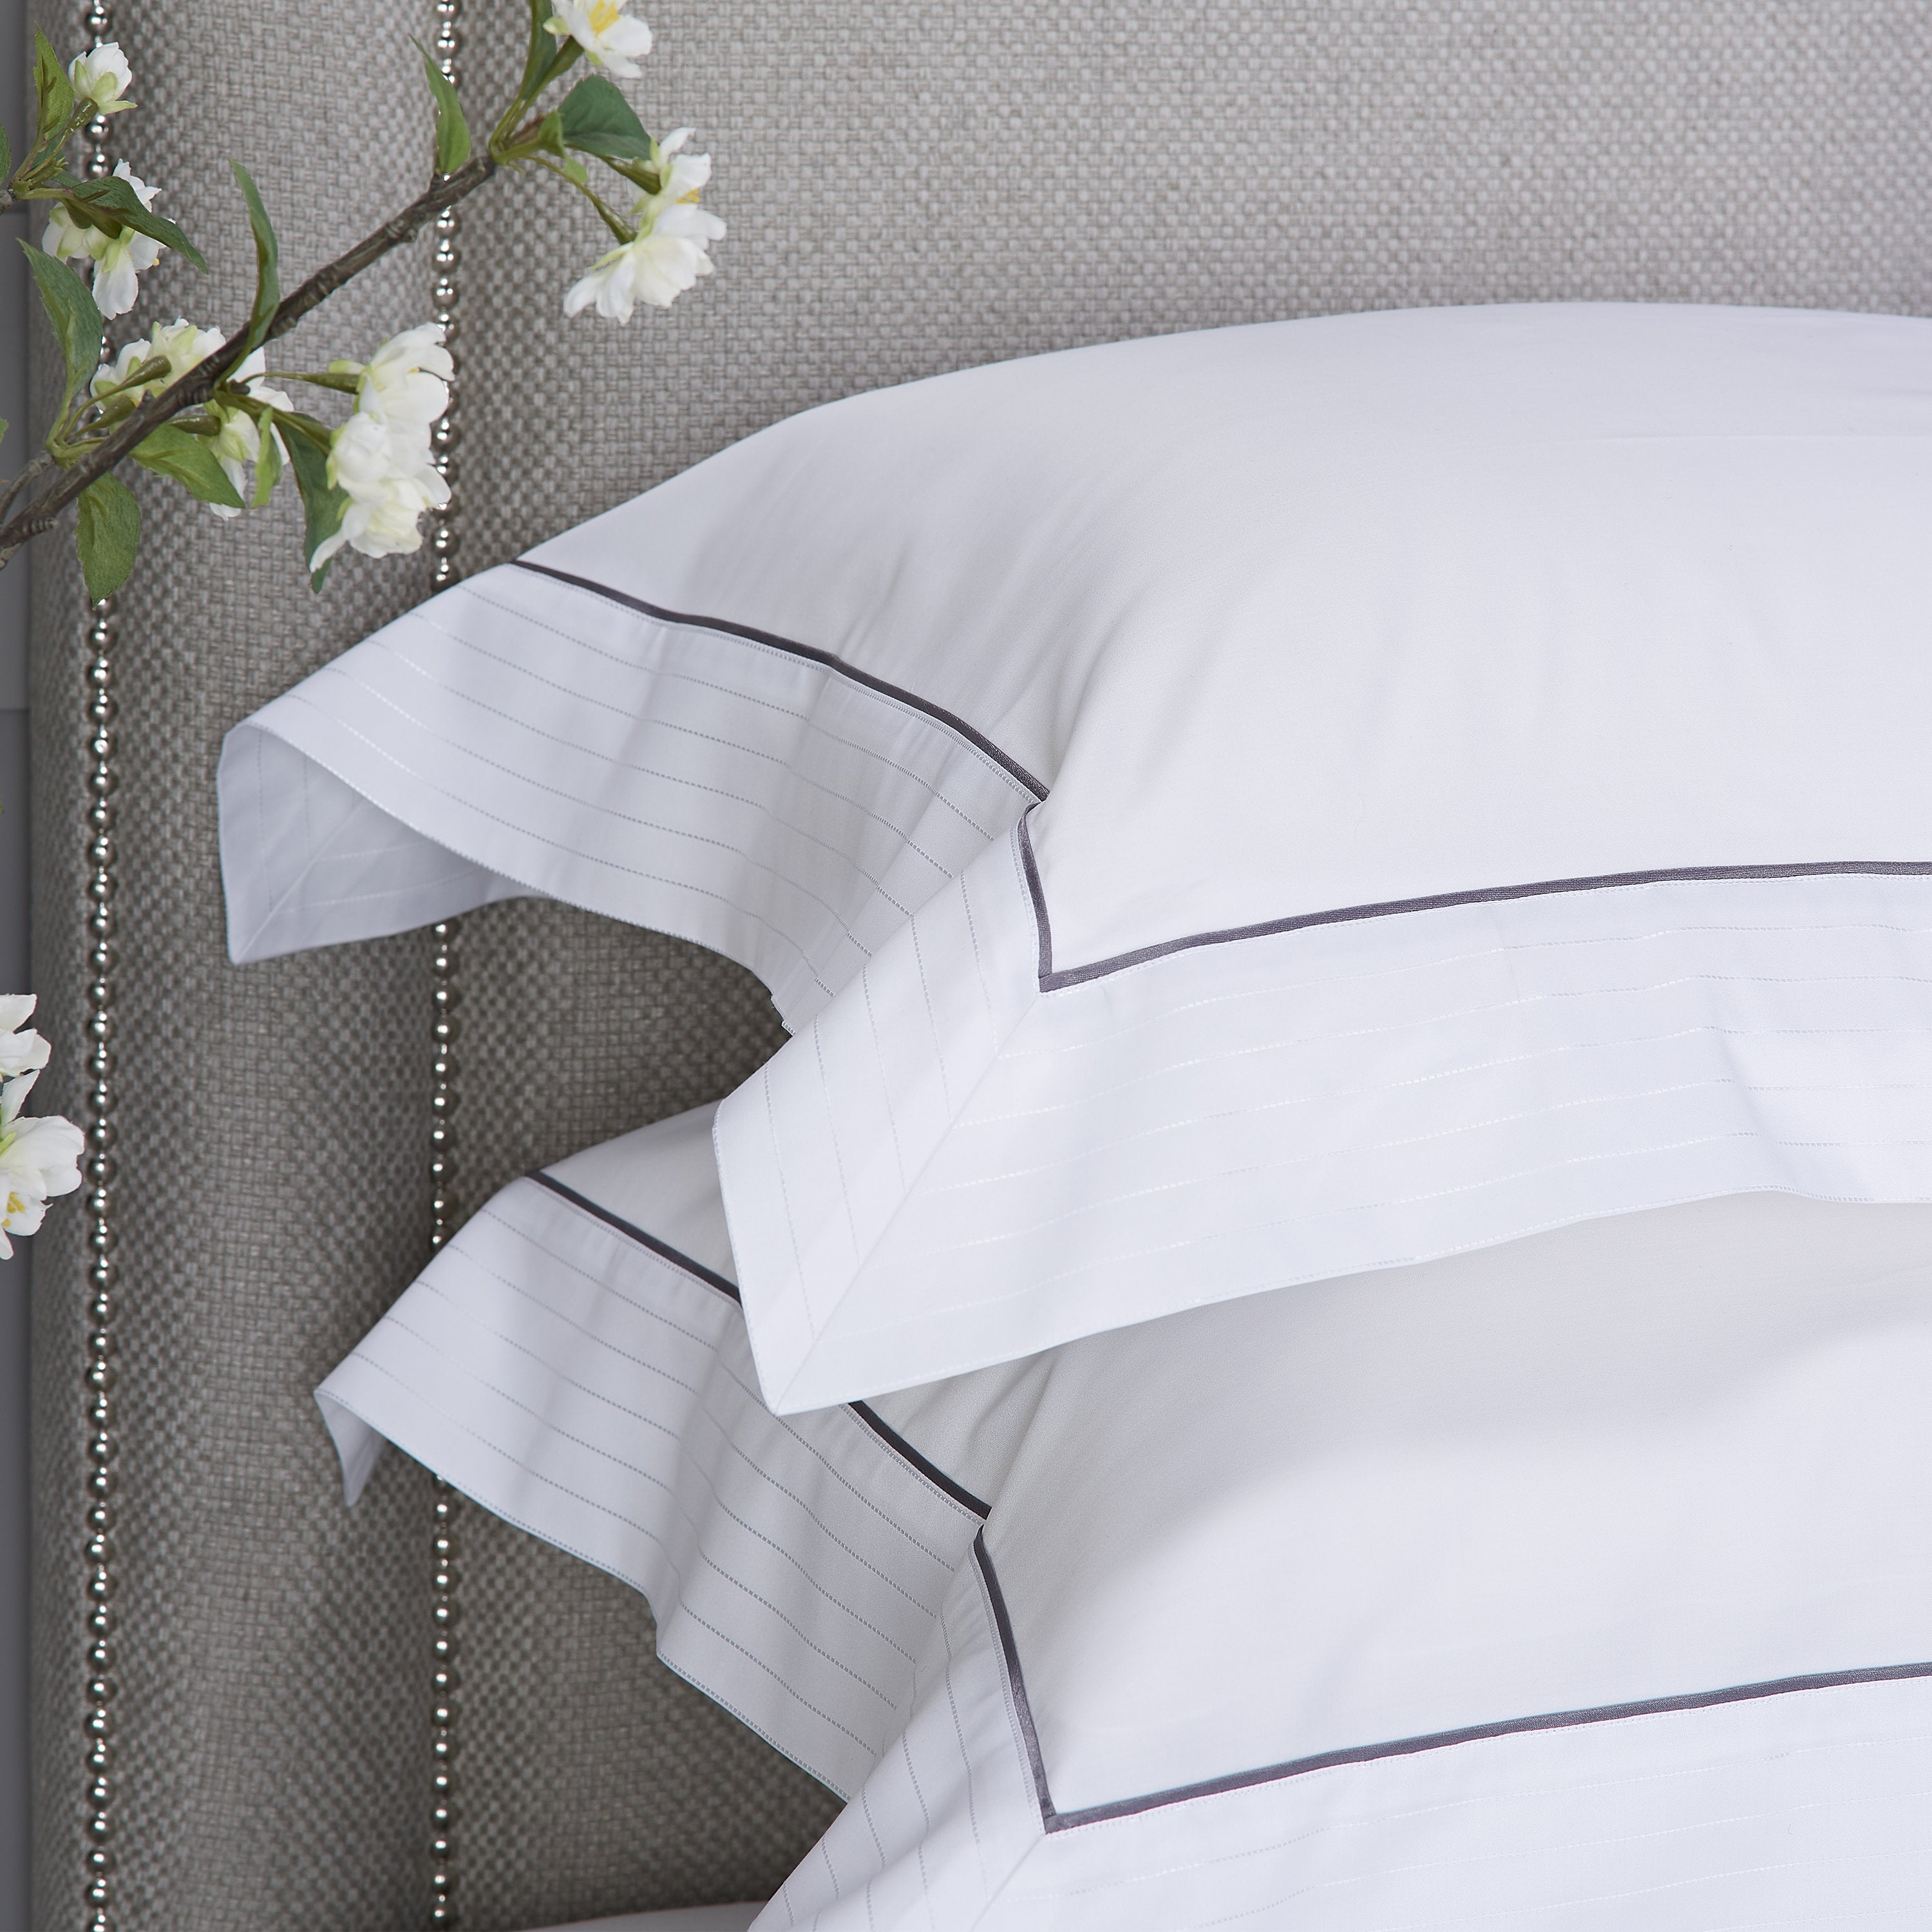 Heirlooms luxurious Sandringham cotton sateen white Oxford Pillowcase set with a contrast border whose subtle self colour woven stitch adds shien to your lines.